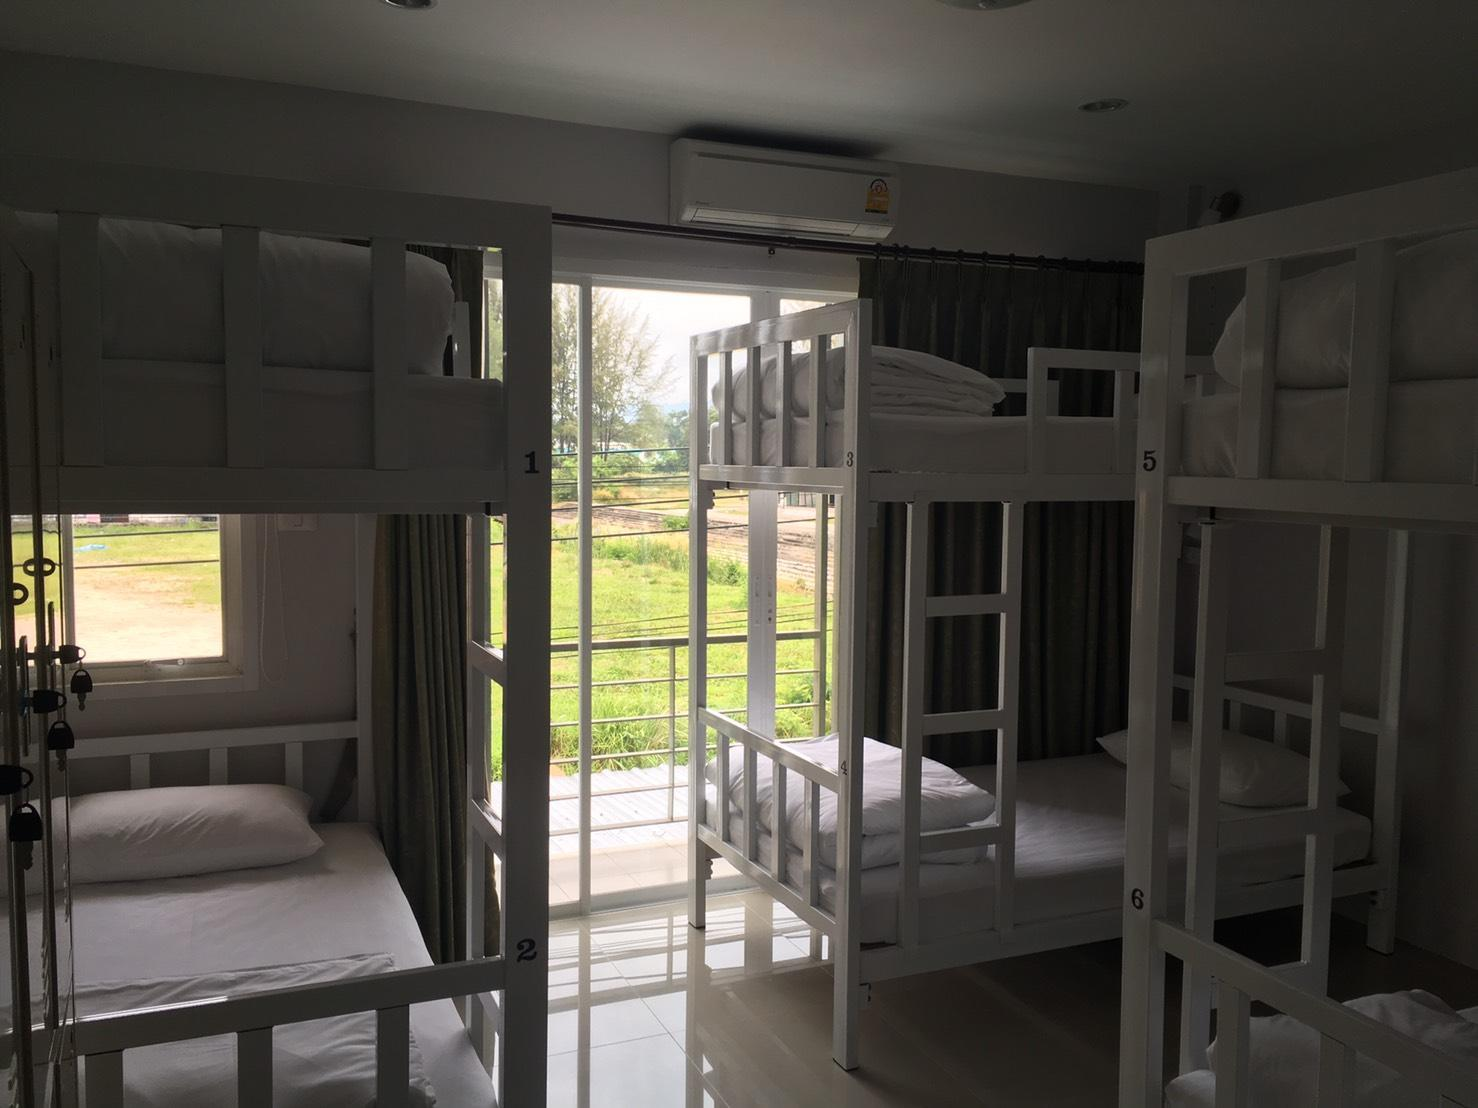 1 Posto Letto in Dormitorio Misto con 6 Letti, Aria Condizionata e Stanza da Bagno in Comune (1 Person in 6-Bed Dormitory with Air Conditioning, Shared Bathroom - Mixed)